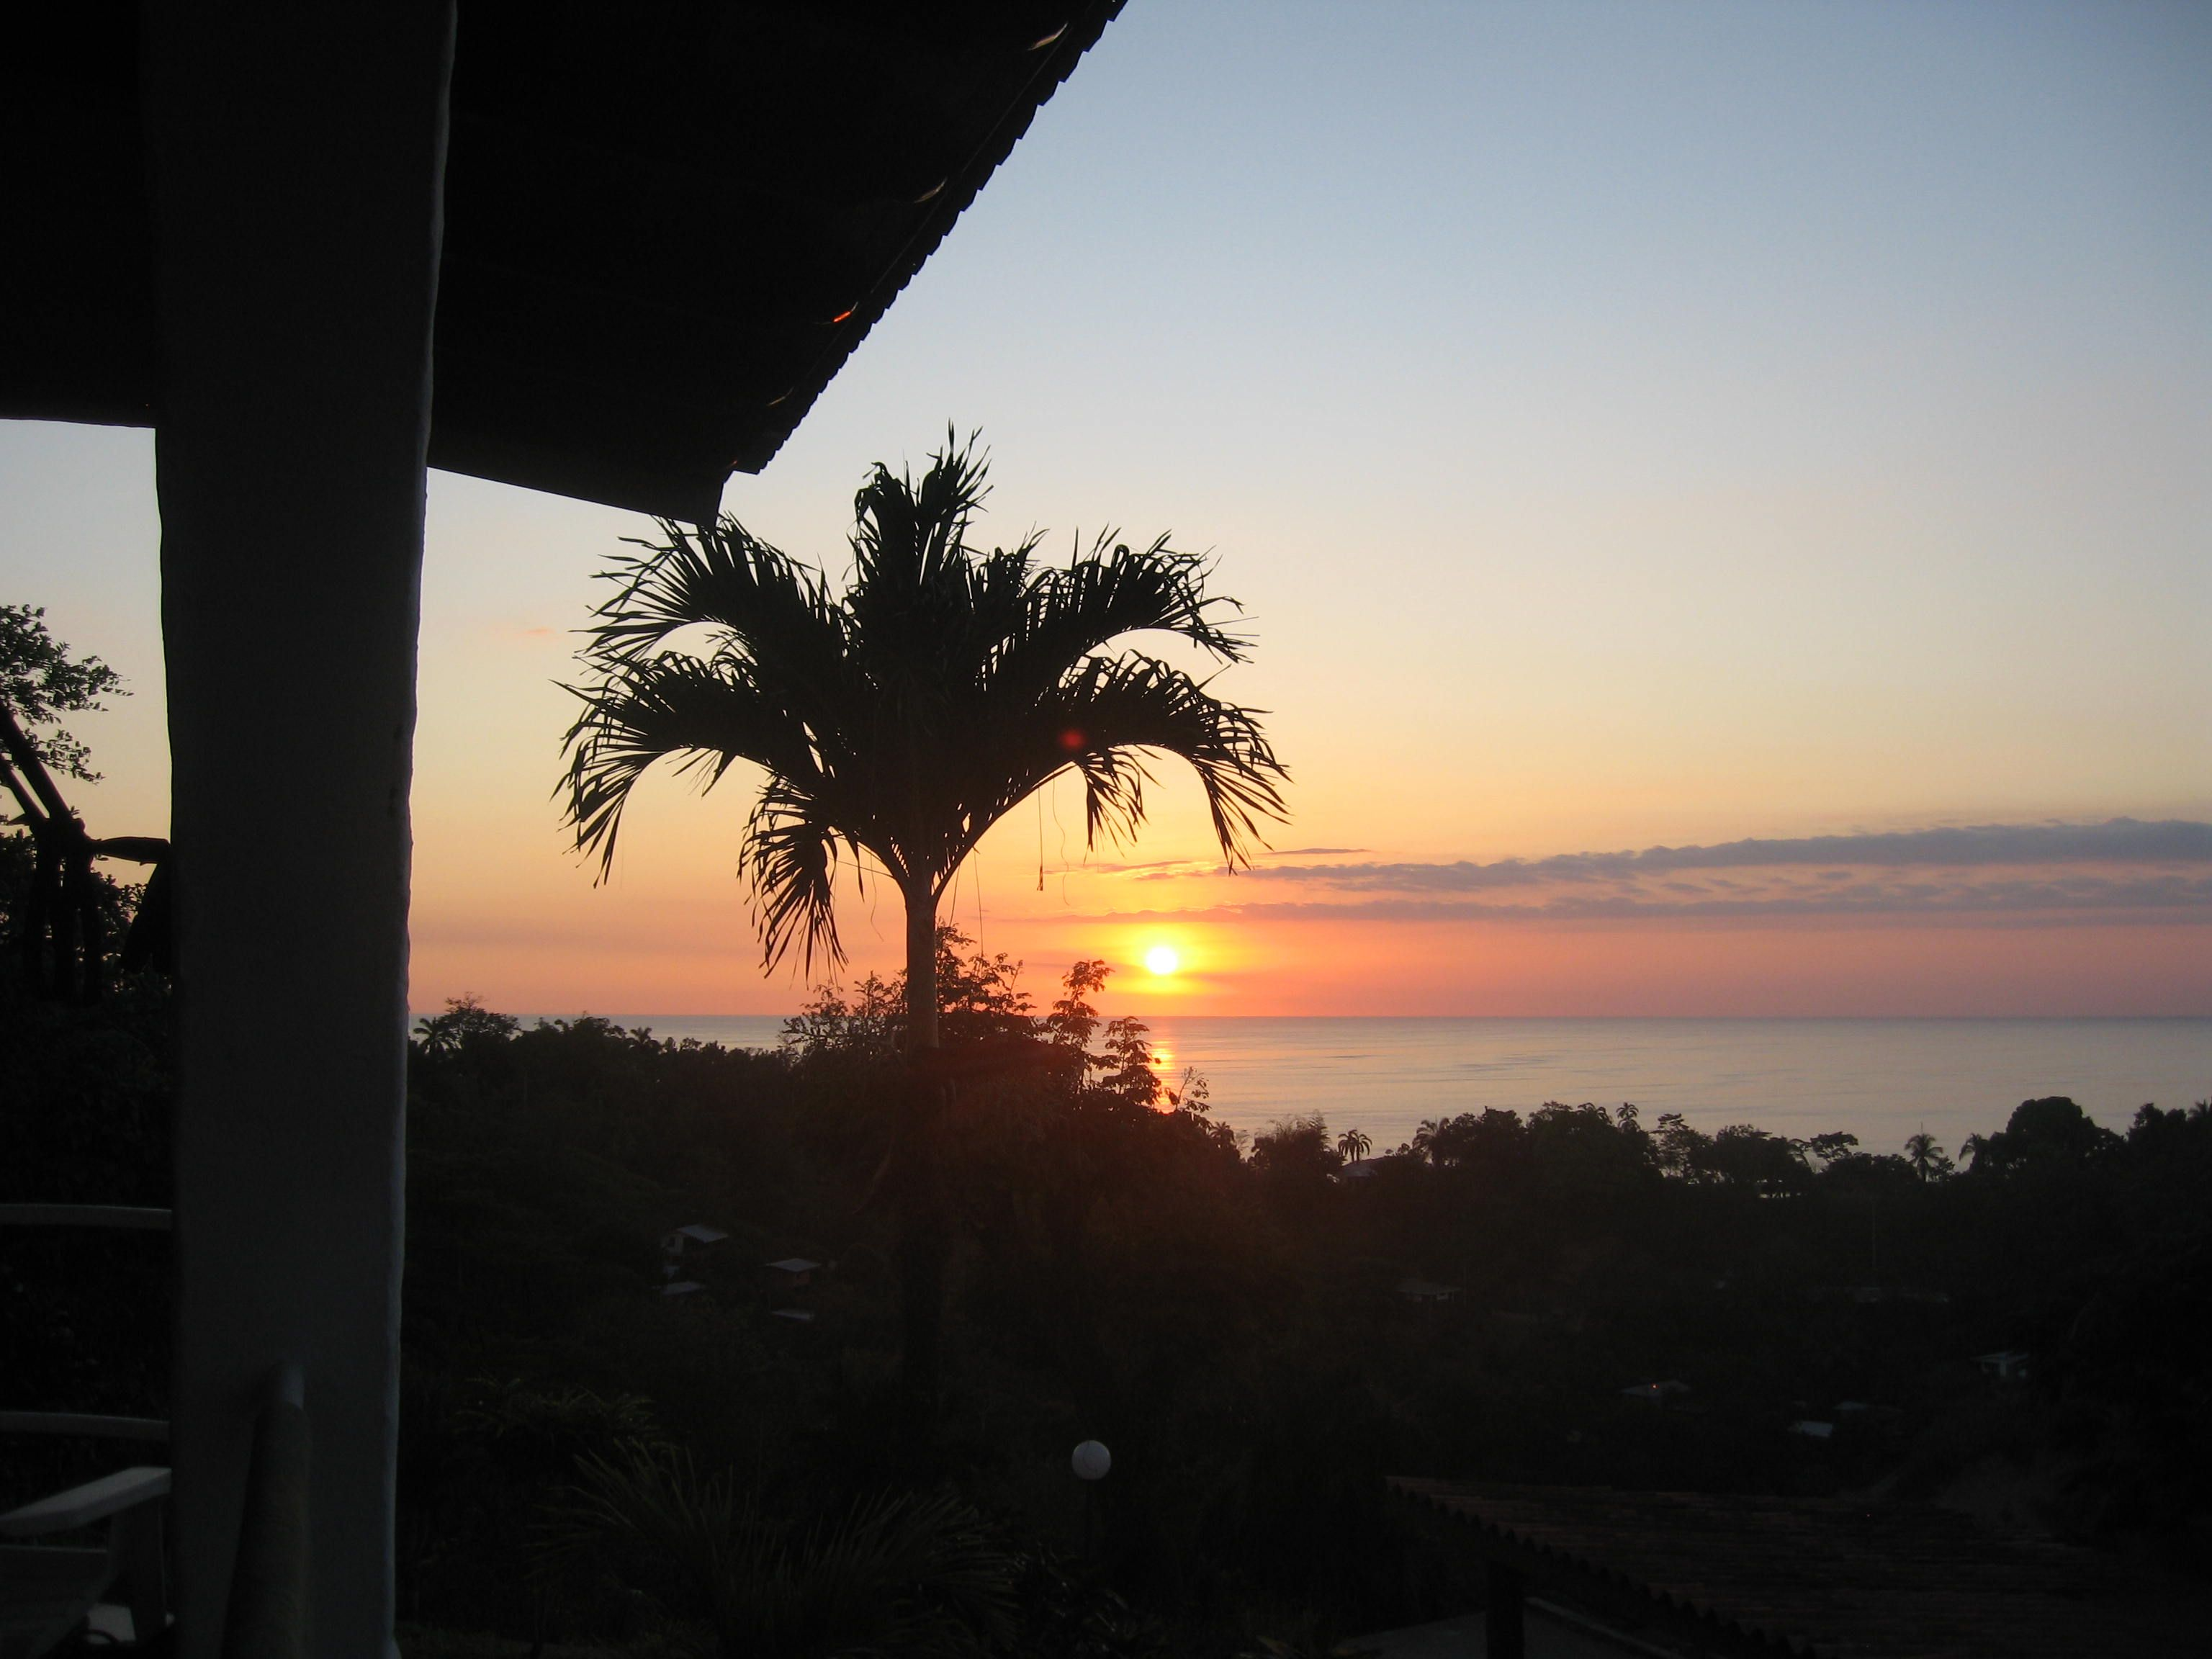 Sunset over Manuel Antonio Beach a sight to behold!